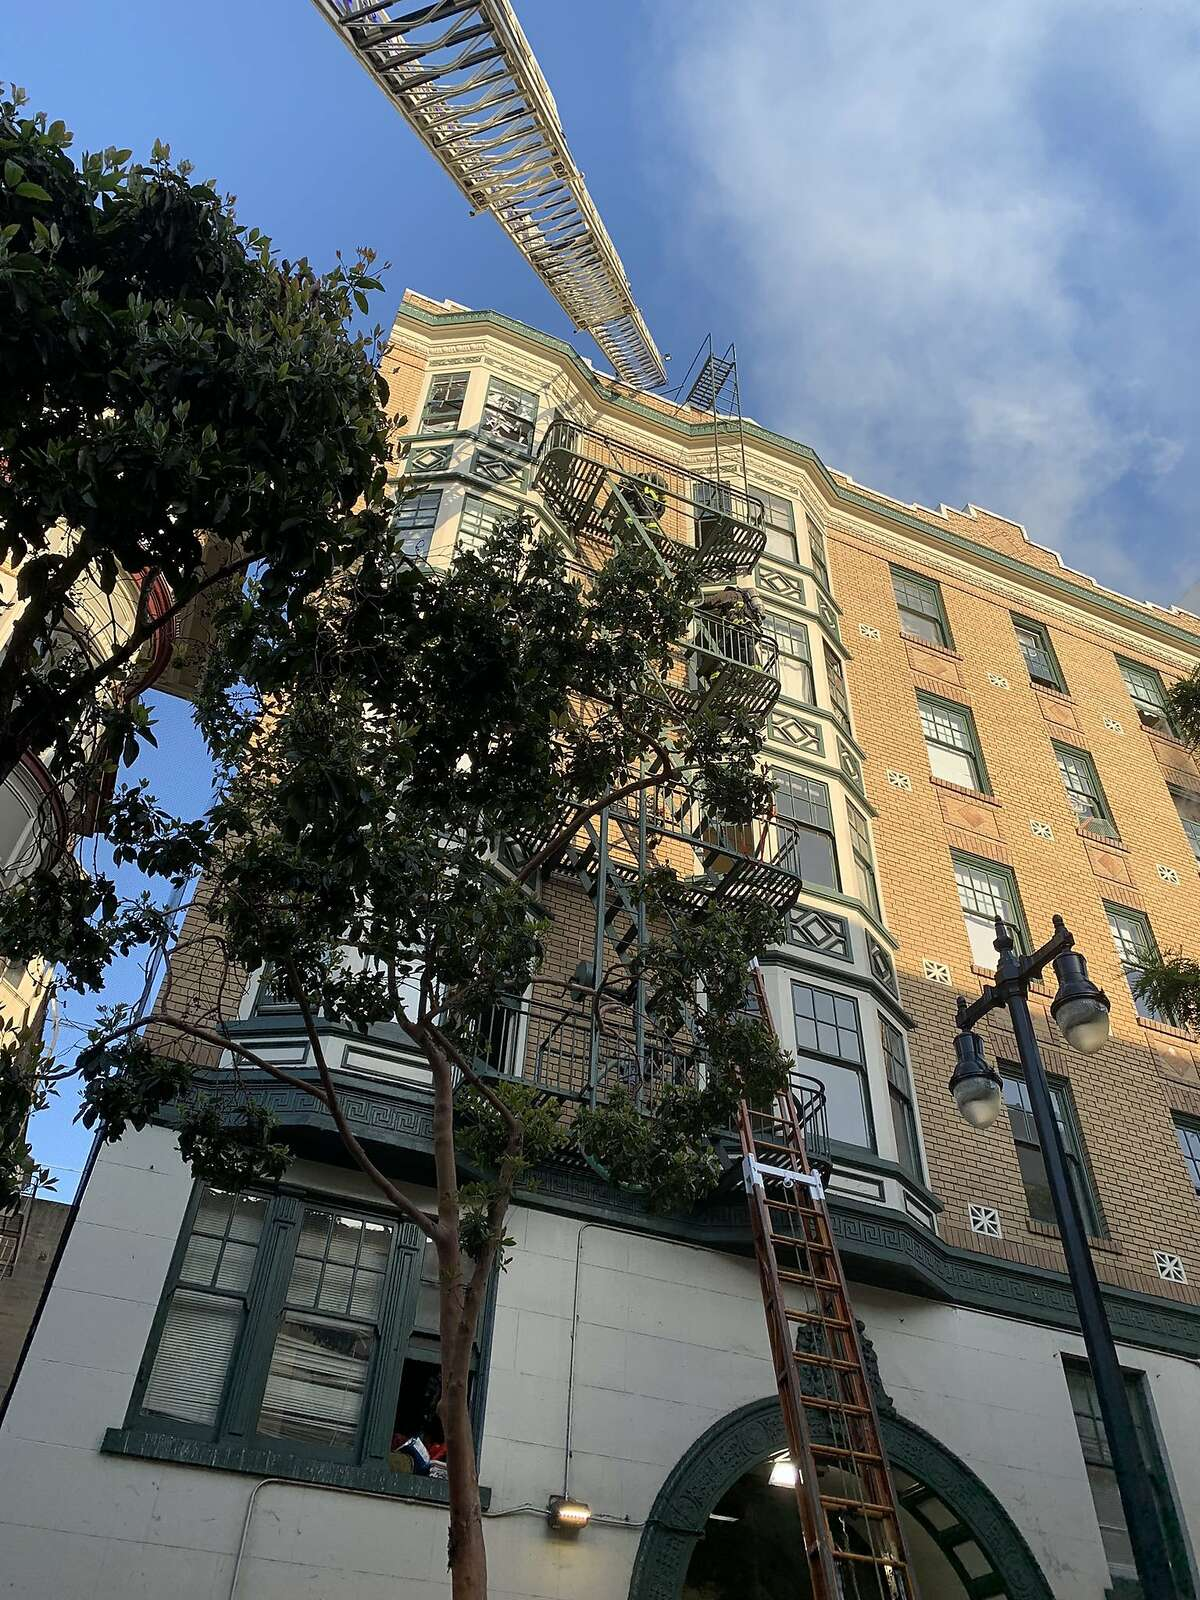 The San Francisco Fire Department contained a one-alarm fire that displaced approximately 60 residents of an apartment complex in the Tenderloin and left 20 injured on Saturday, June 19, 2021.